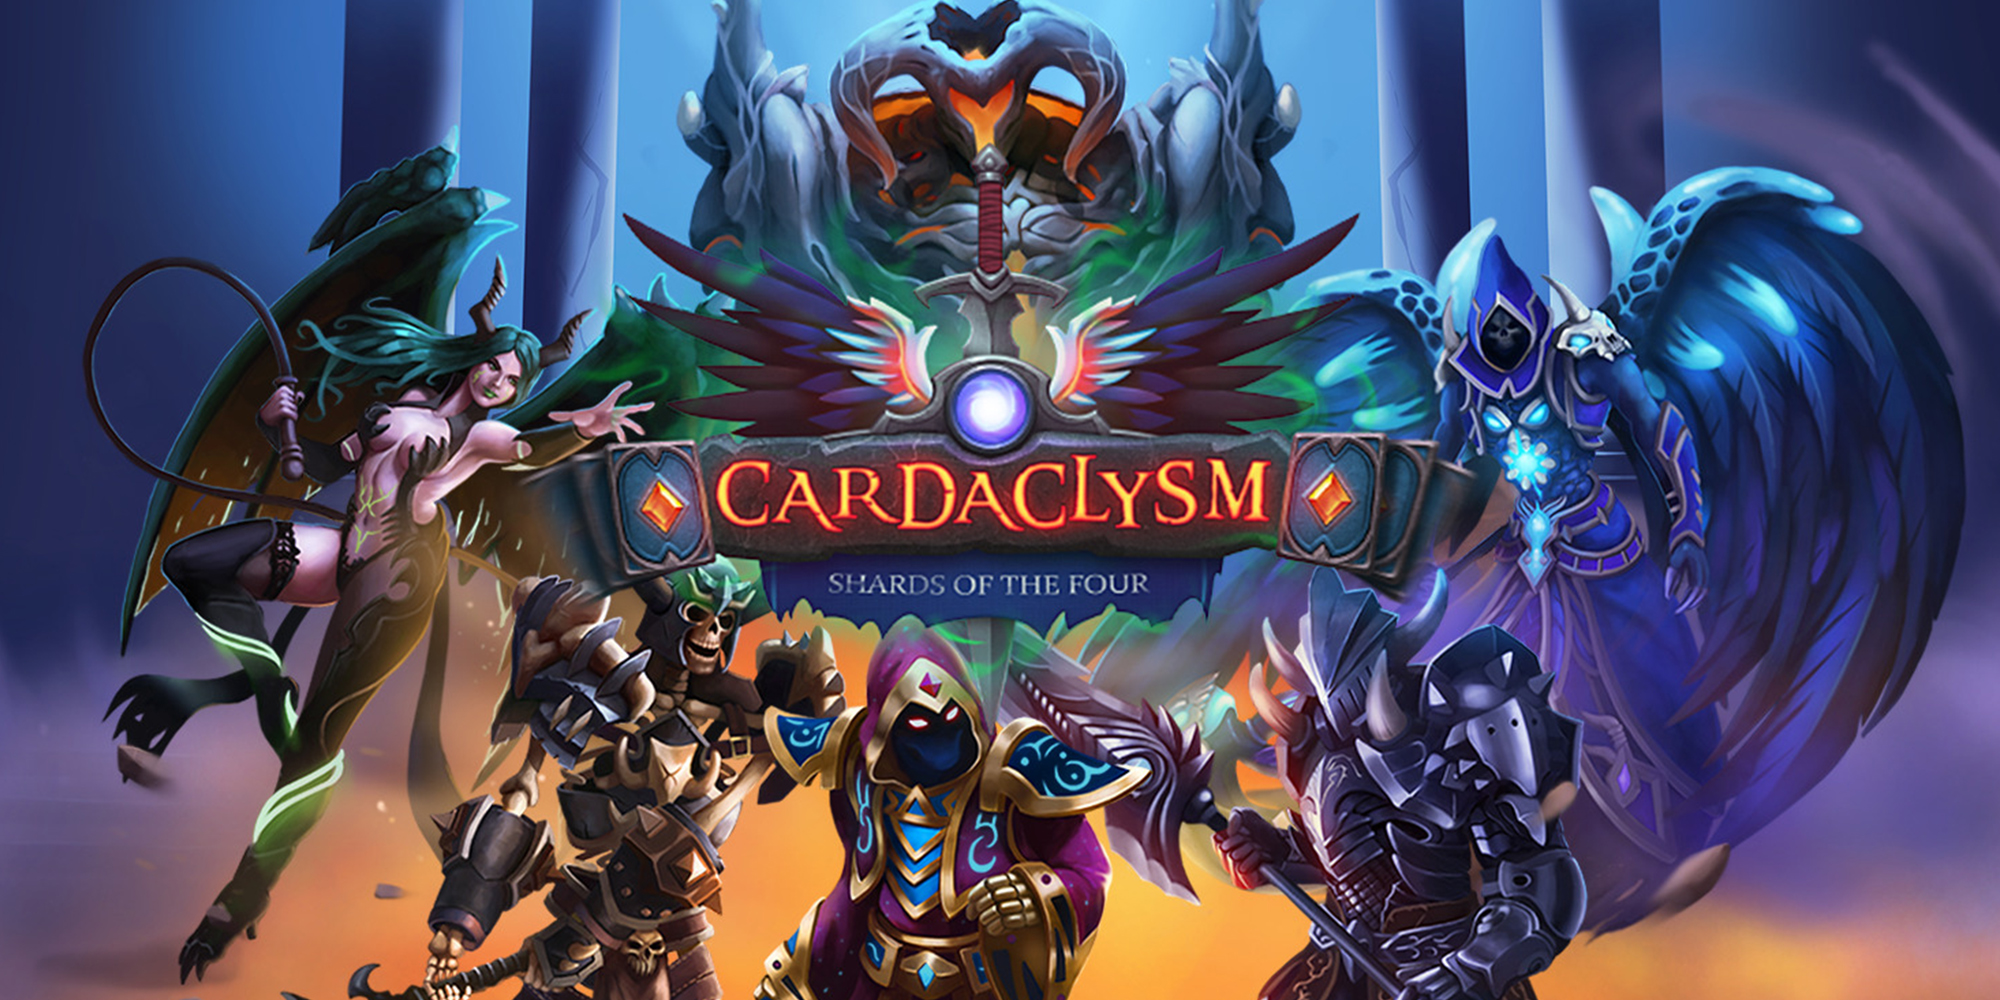 Cardaclysm: Shards of the Four Review